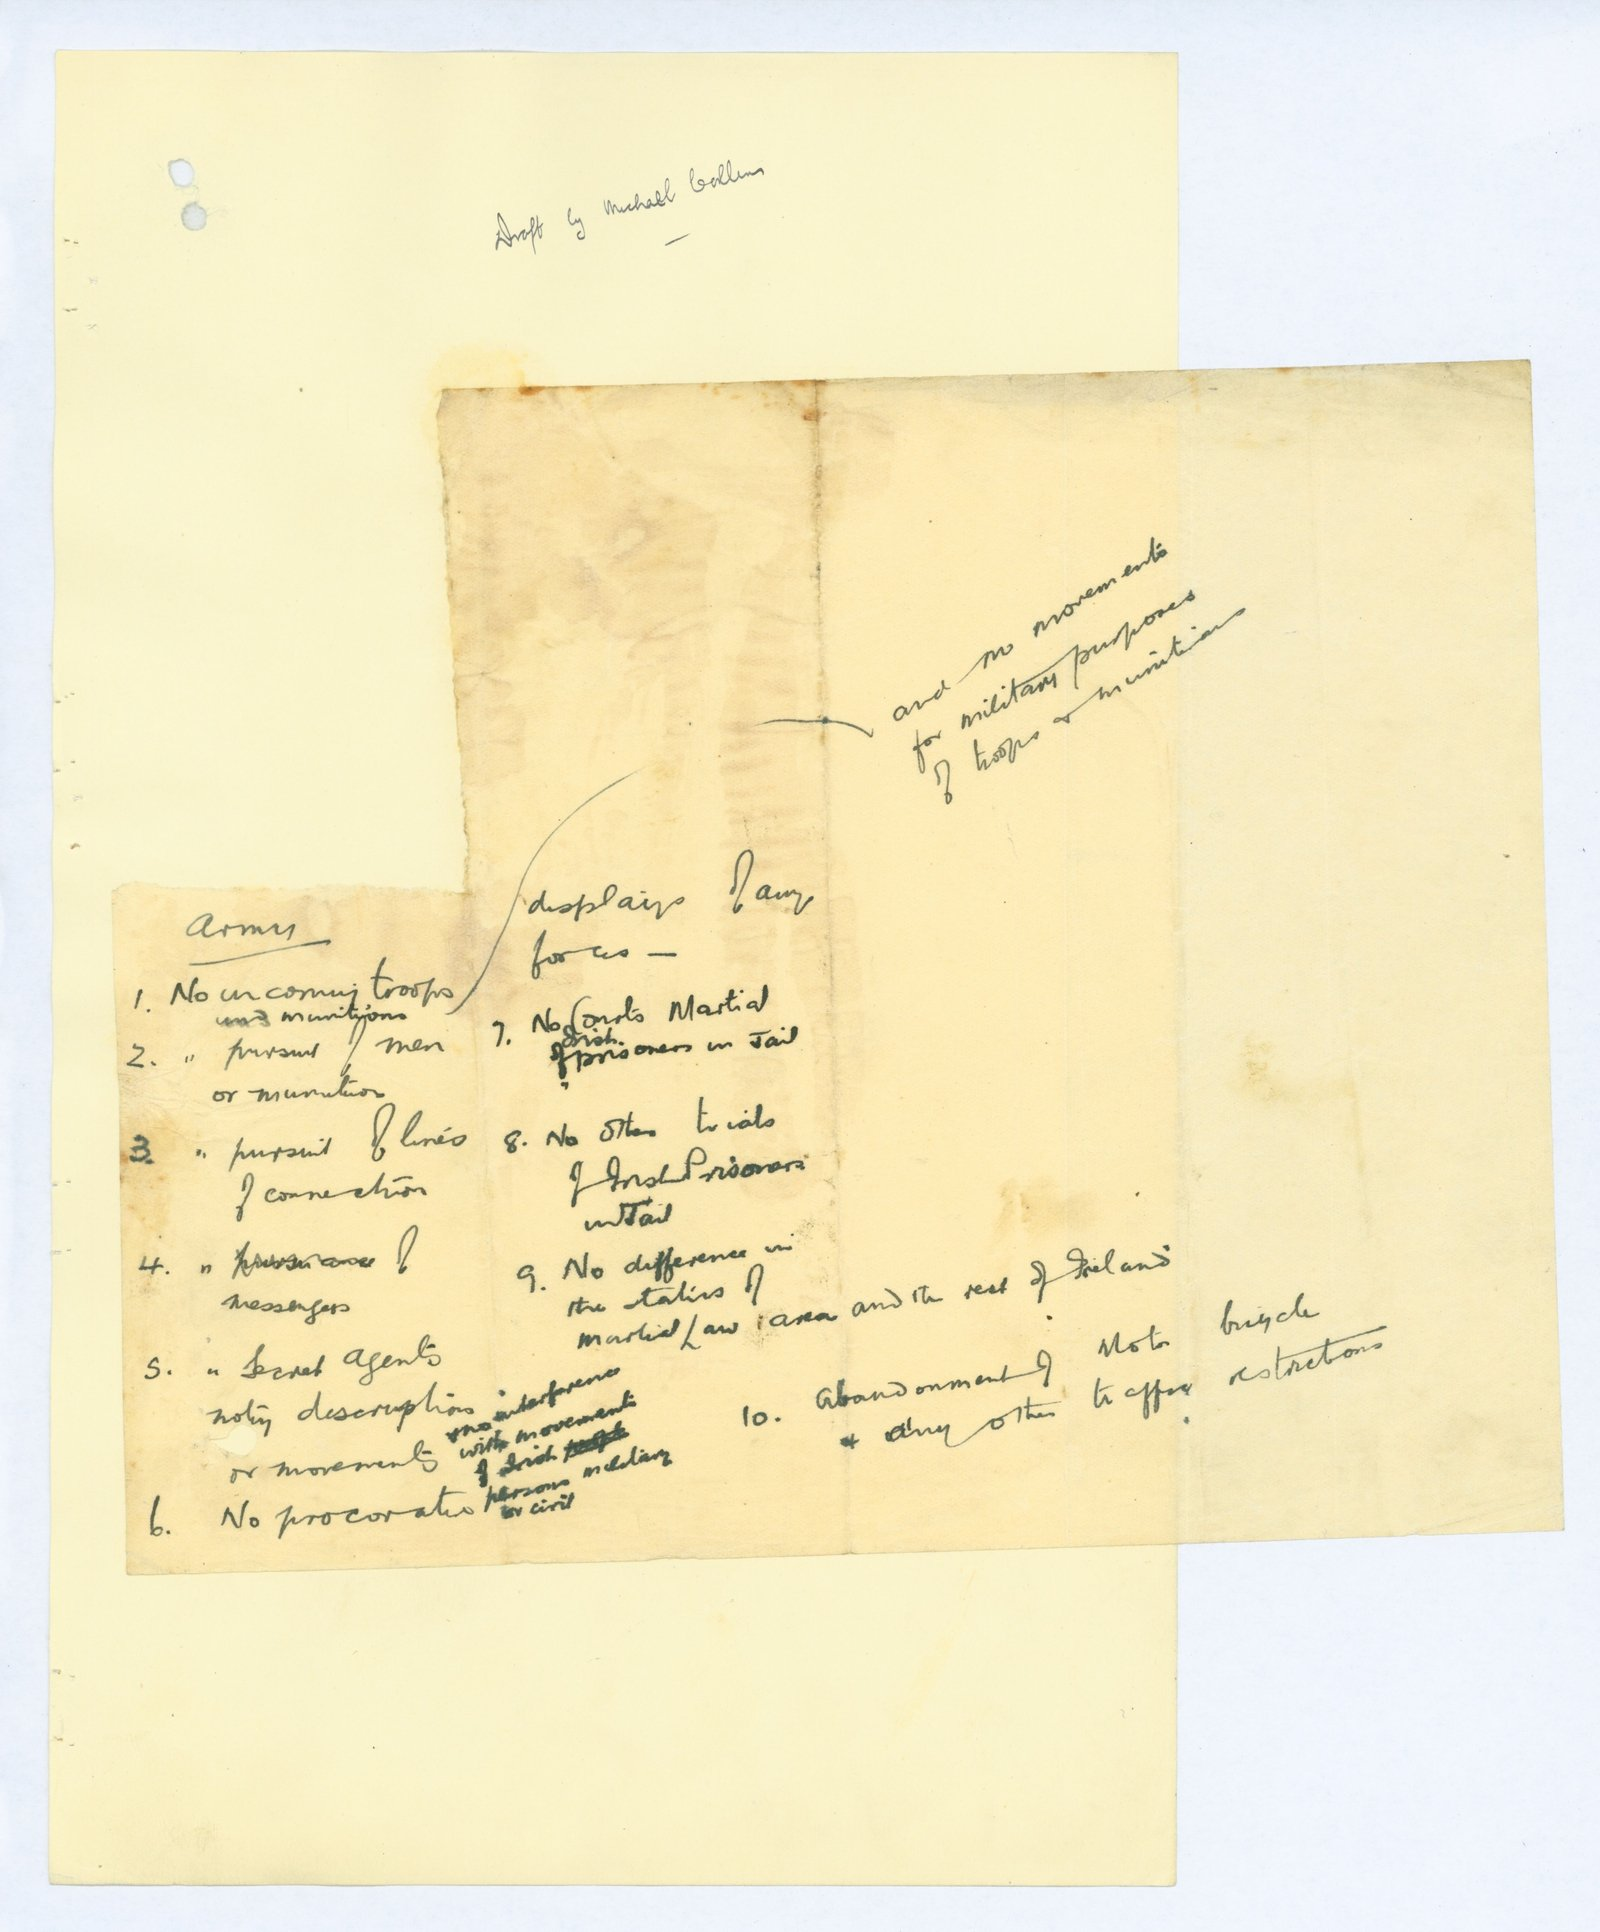 Image - Michael Collins' own first draft of what would become the Truce document. It might have been written in haste, but the laser-like focus on the priorities for the IRA is already obvious.   Credit: By kind permission of the National Archives.